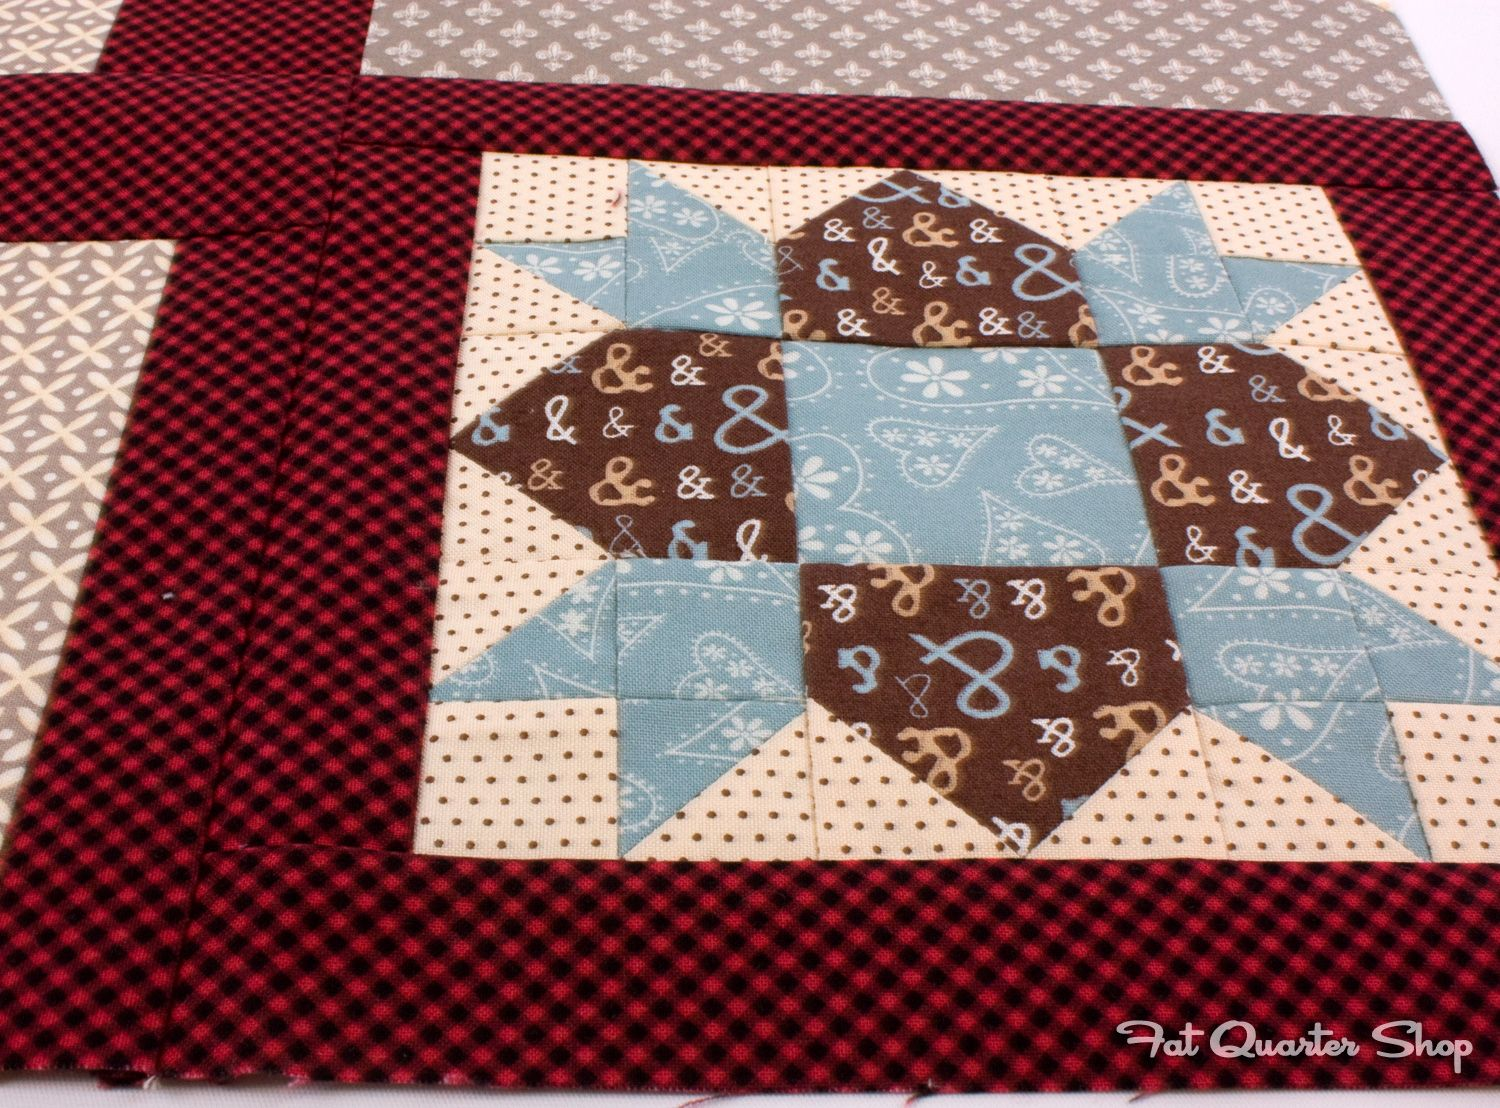 Debbie's first barn in the Quilty Barn Along is so cute!  These reds are adorable!